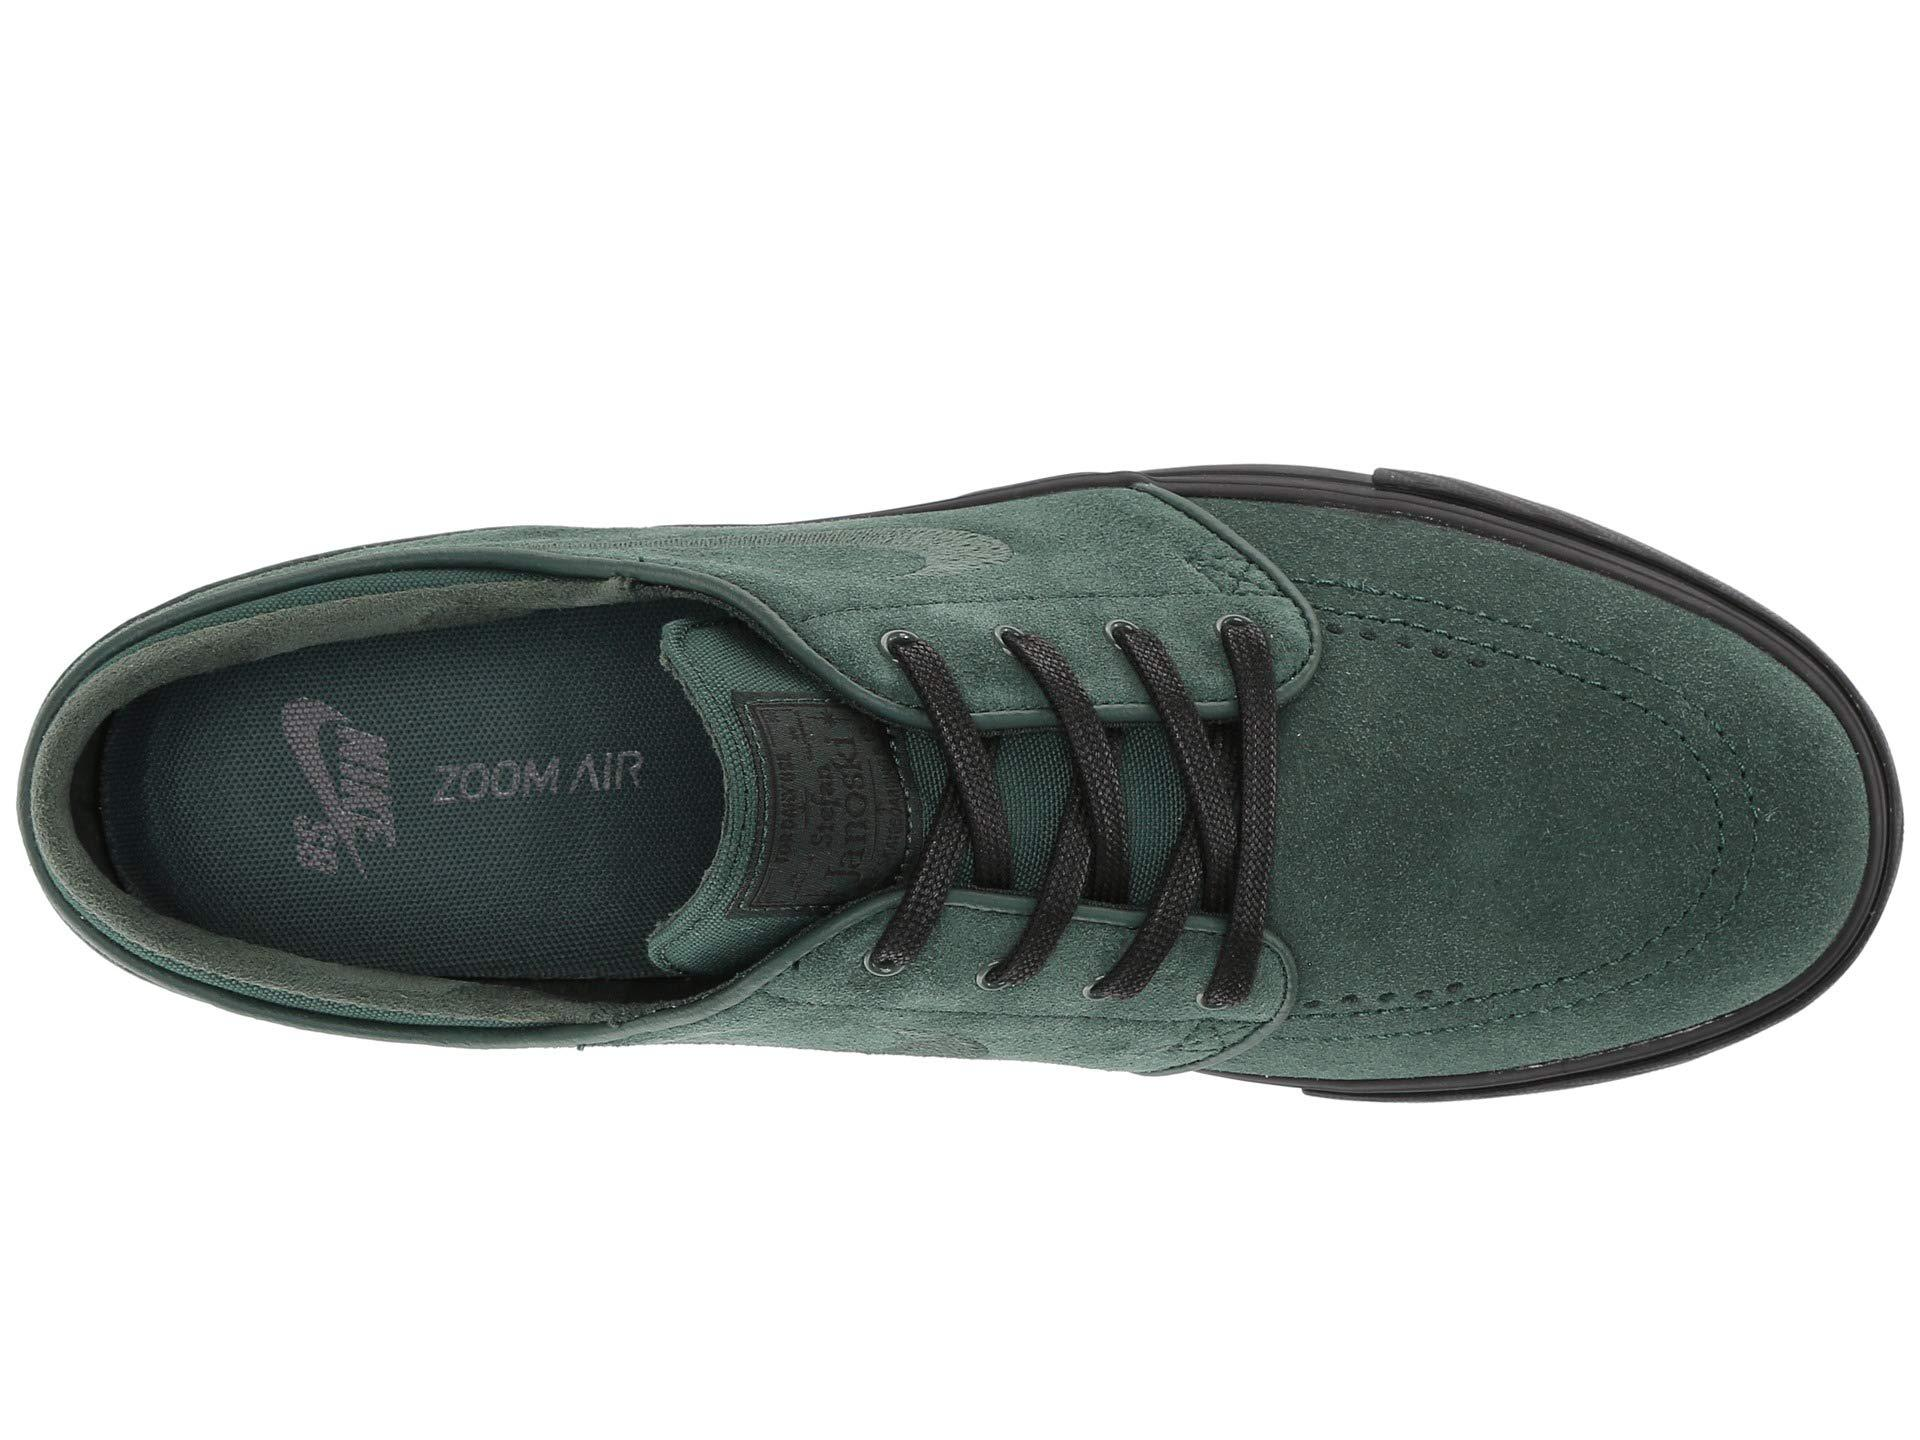 trono Tercero espejo  Nike Zoom Stefan Janoski - Suede (midnight Green/midnight Green/black)  Skate Shoes for Men - Lyst